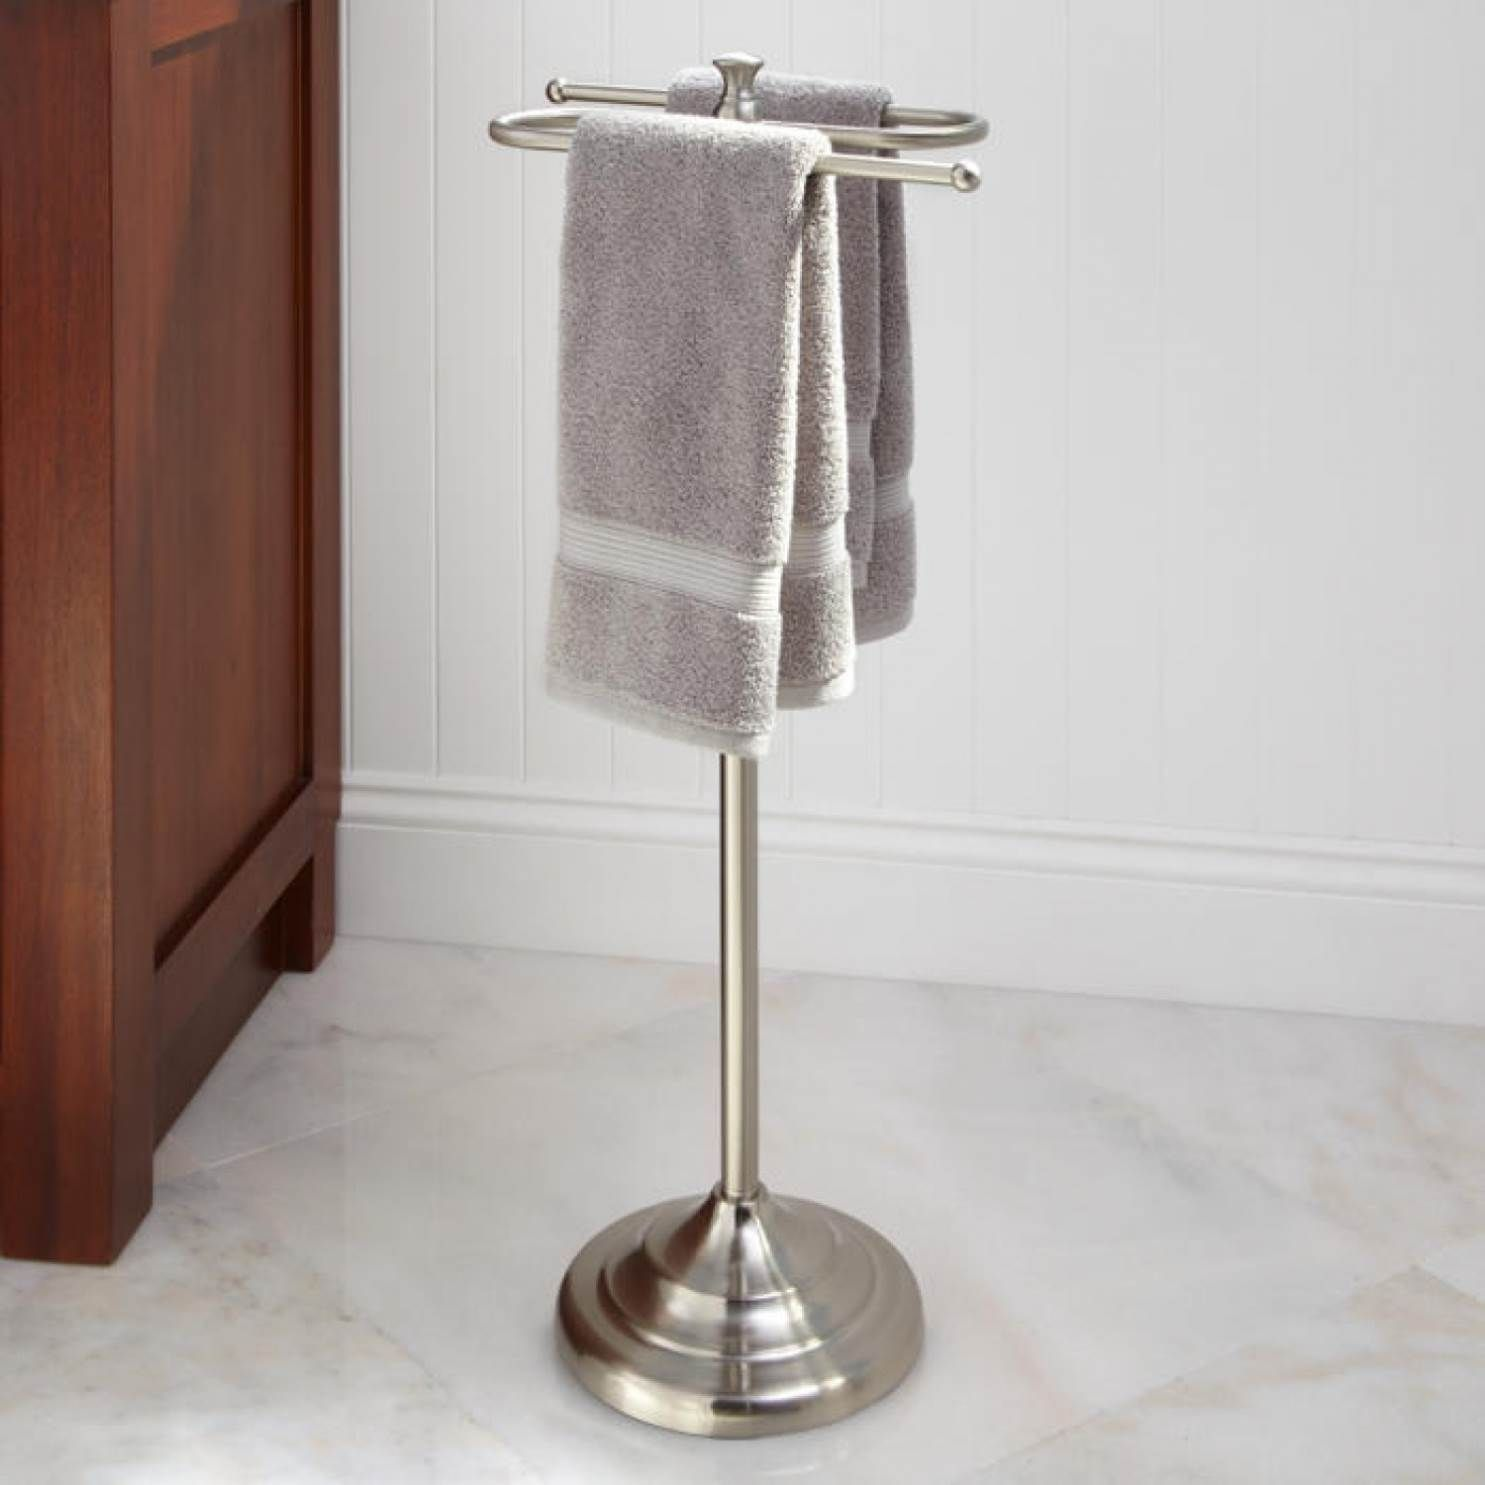 Diy Standing Bathroom Towel Racks With Bathroom Towel Holders